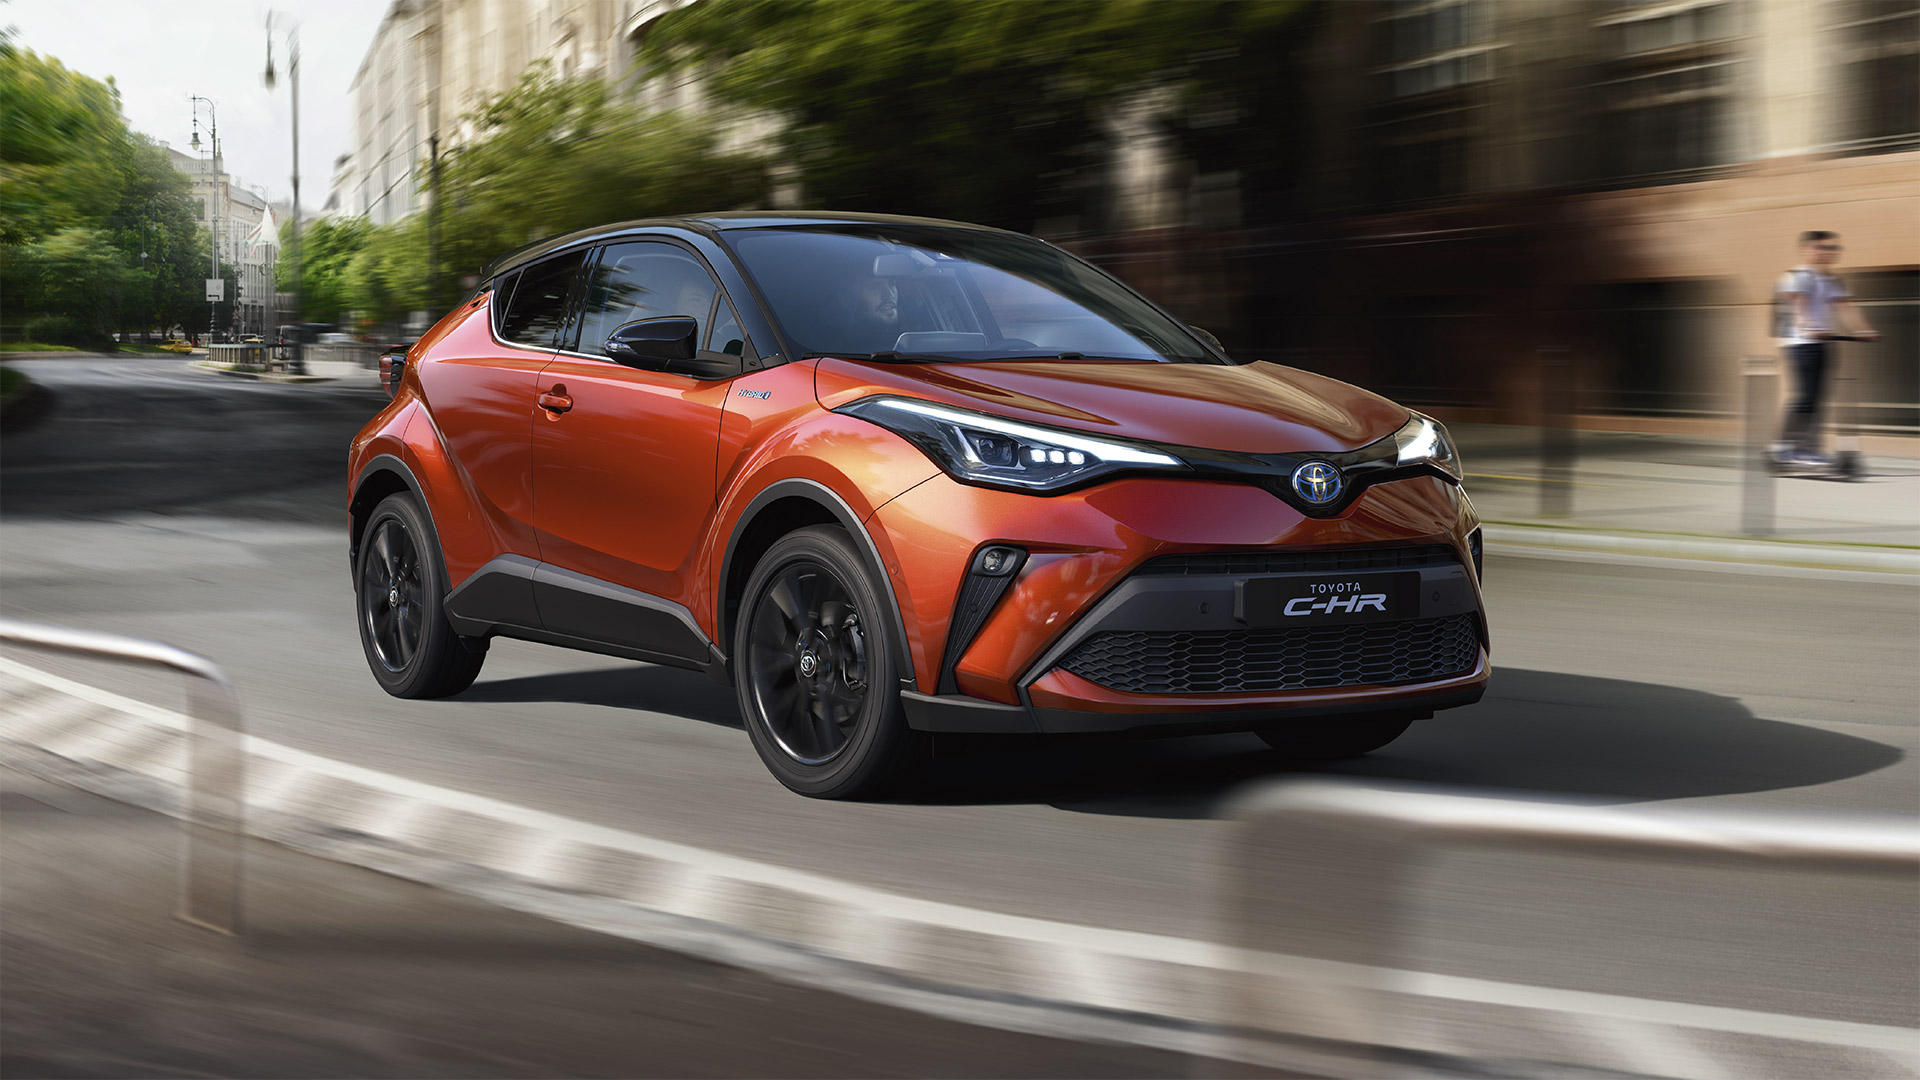 toyota-c-hr-2019-gallery-004-full_tcm-1016-1776333